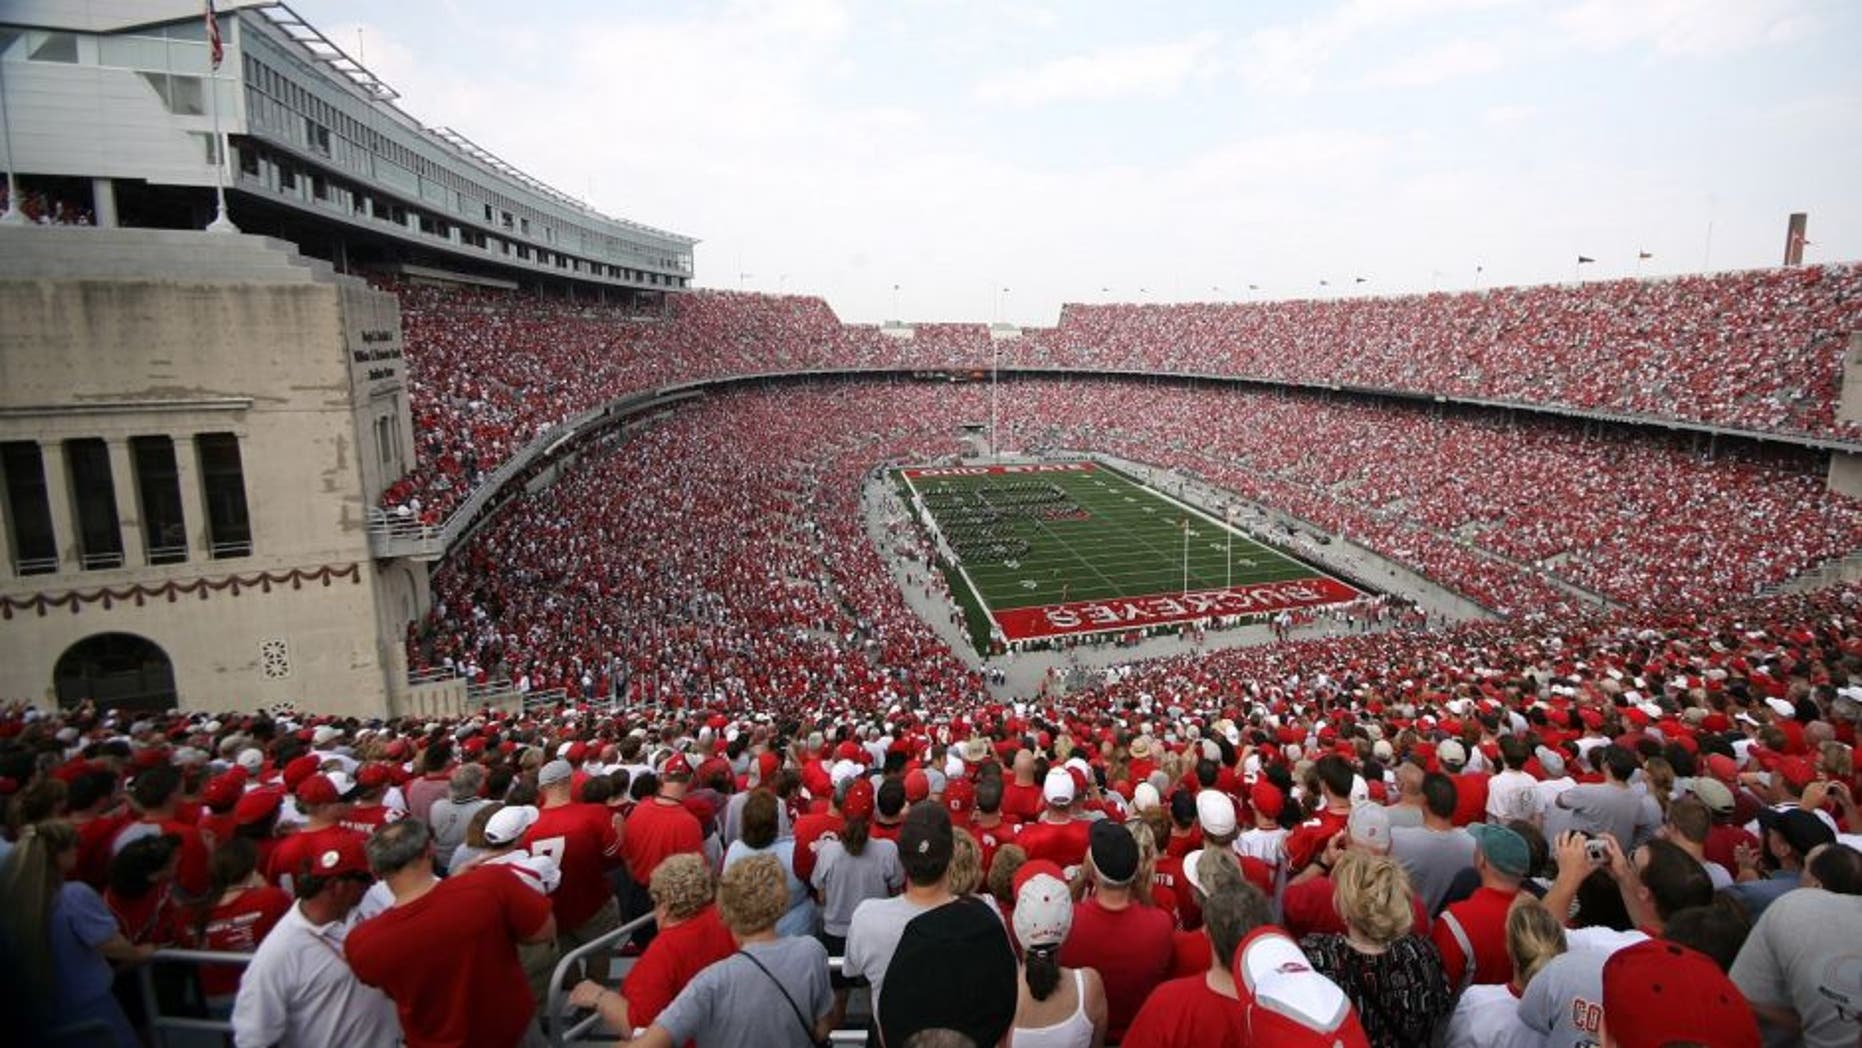 COLUMBUS, OH - SEPTEMBER 22: General view of the crowd during the game between the Northwestern Wildcats and the Ohio State Buckeyes on September 22, 2007 at the Horseshoe in Columbus, Ohio. (Photo by Collegiate Images/Getty Images)